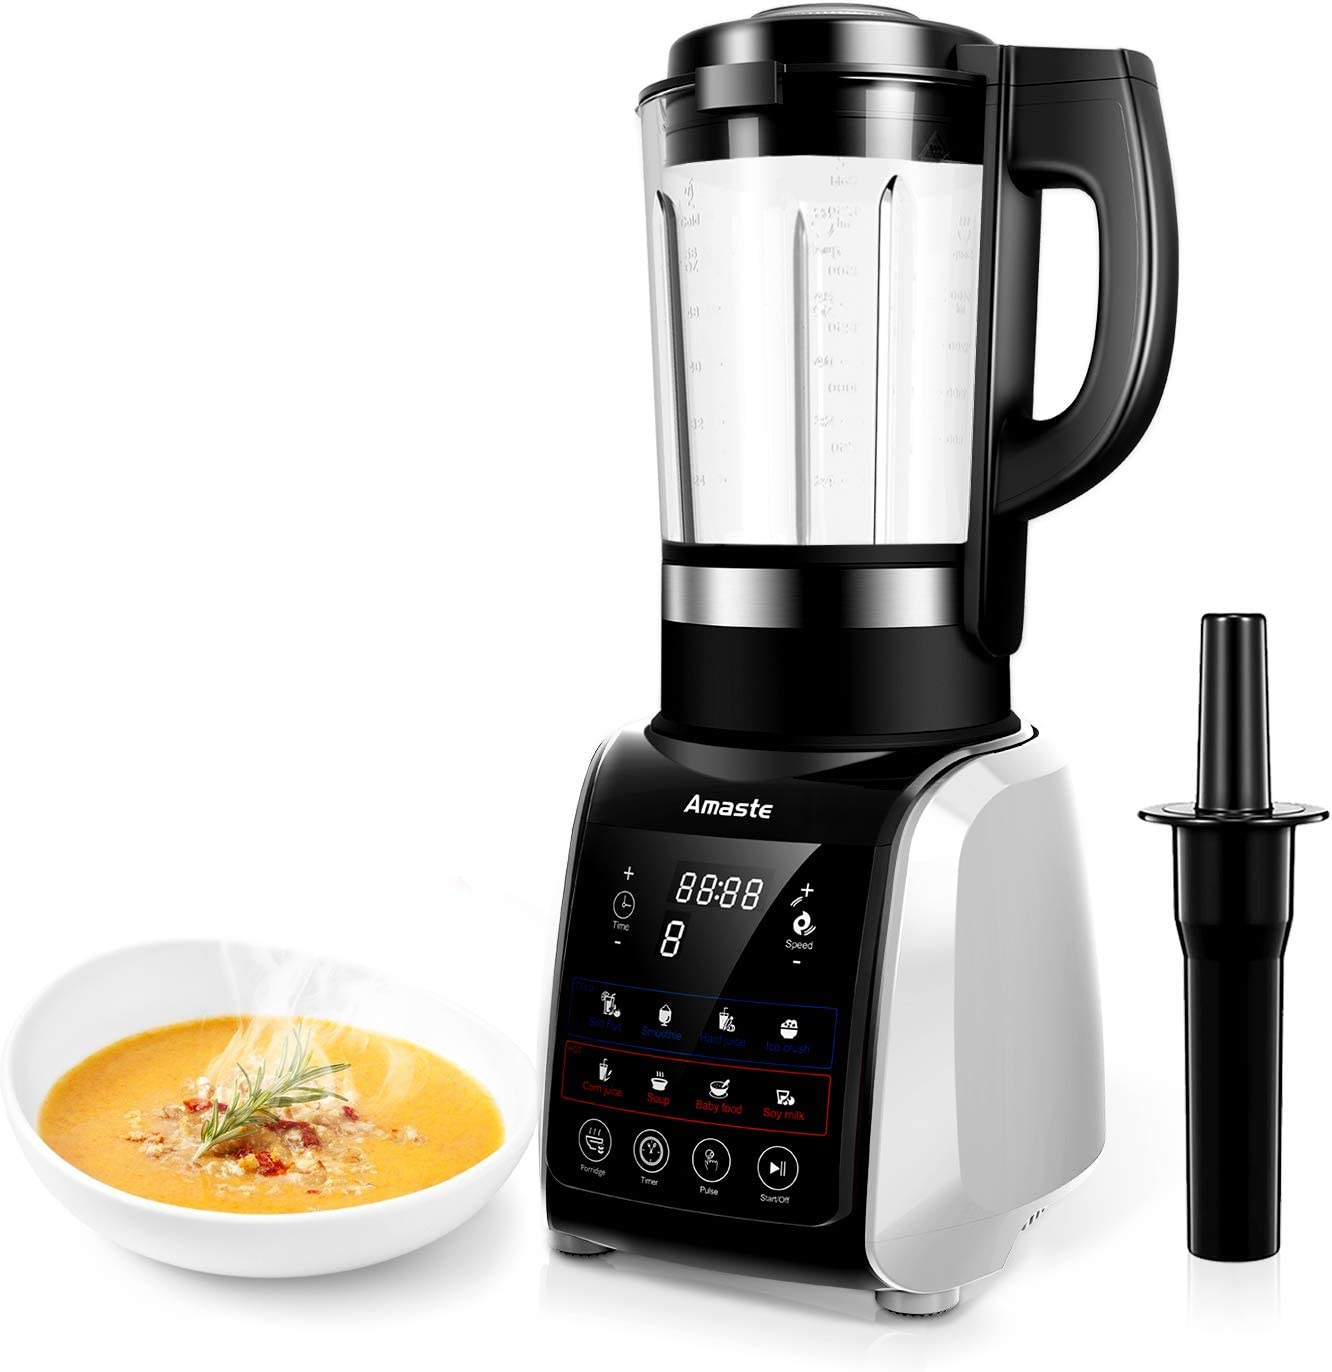 Blender for Kitchen- 1200W Blender for shakes and smoothies,64 oz Glass Blender with 9 Pre-Programmed Settings, Countertop Blenders, Cold & Heat Function with Timer, MR-01 SLIVER